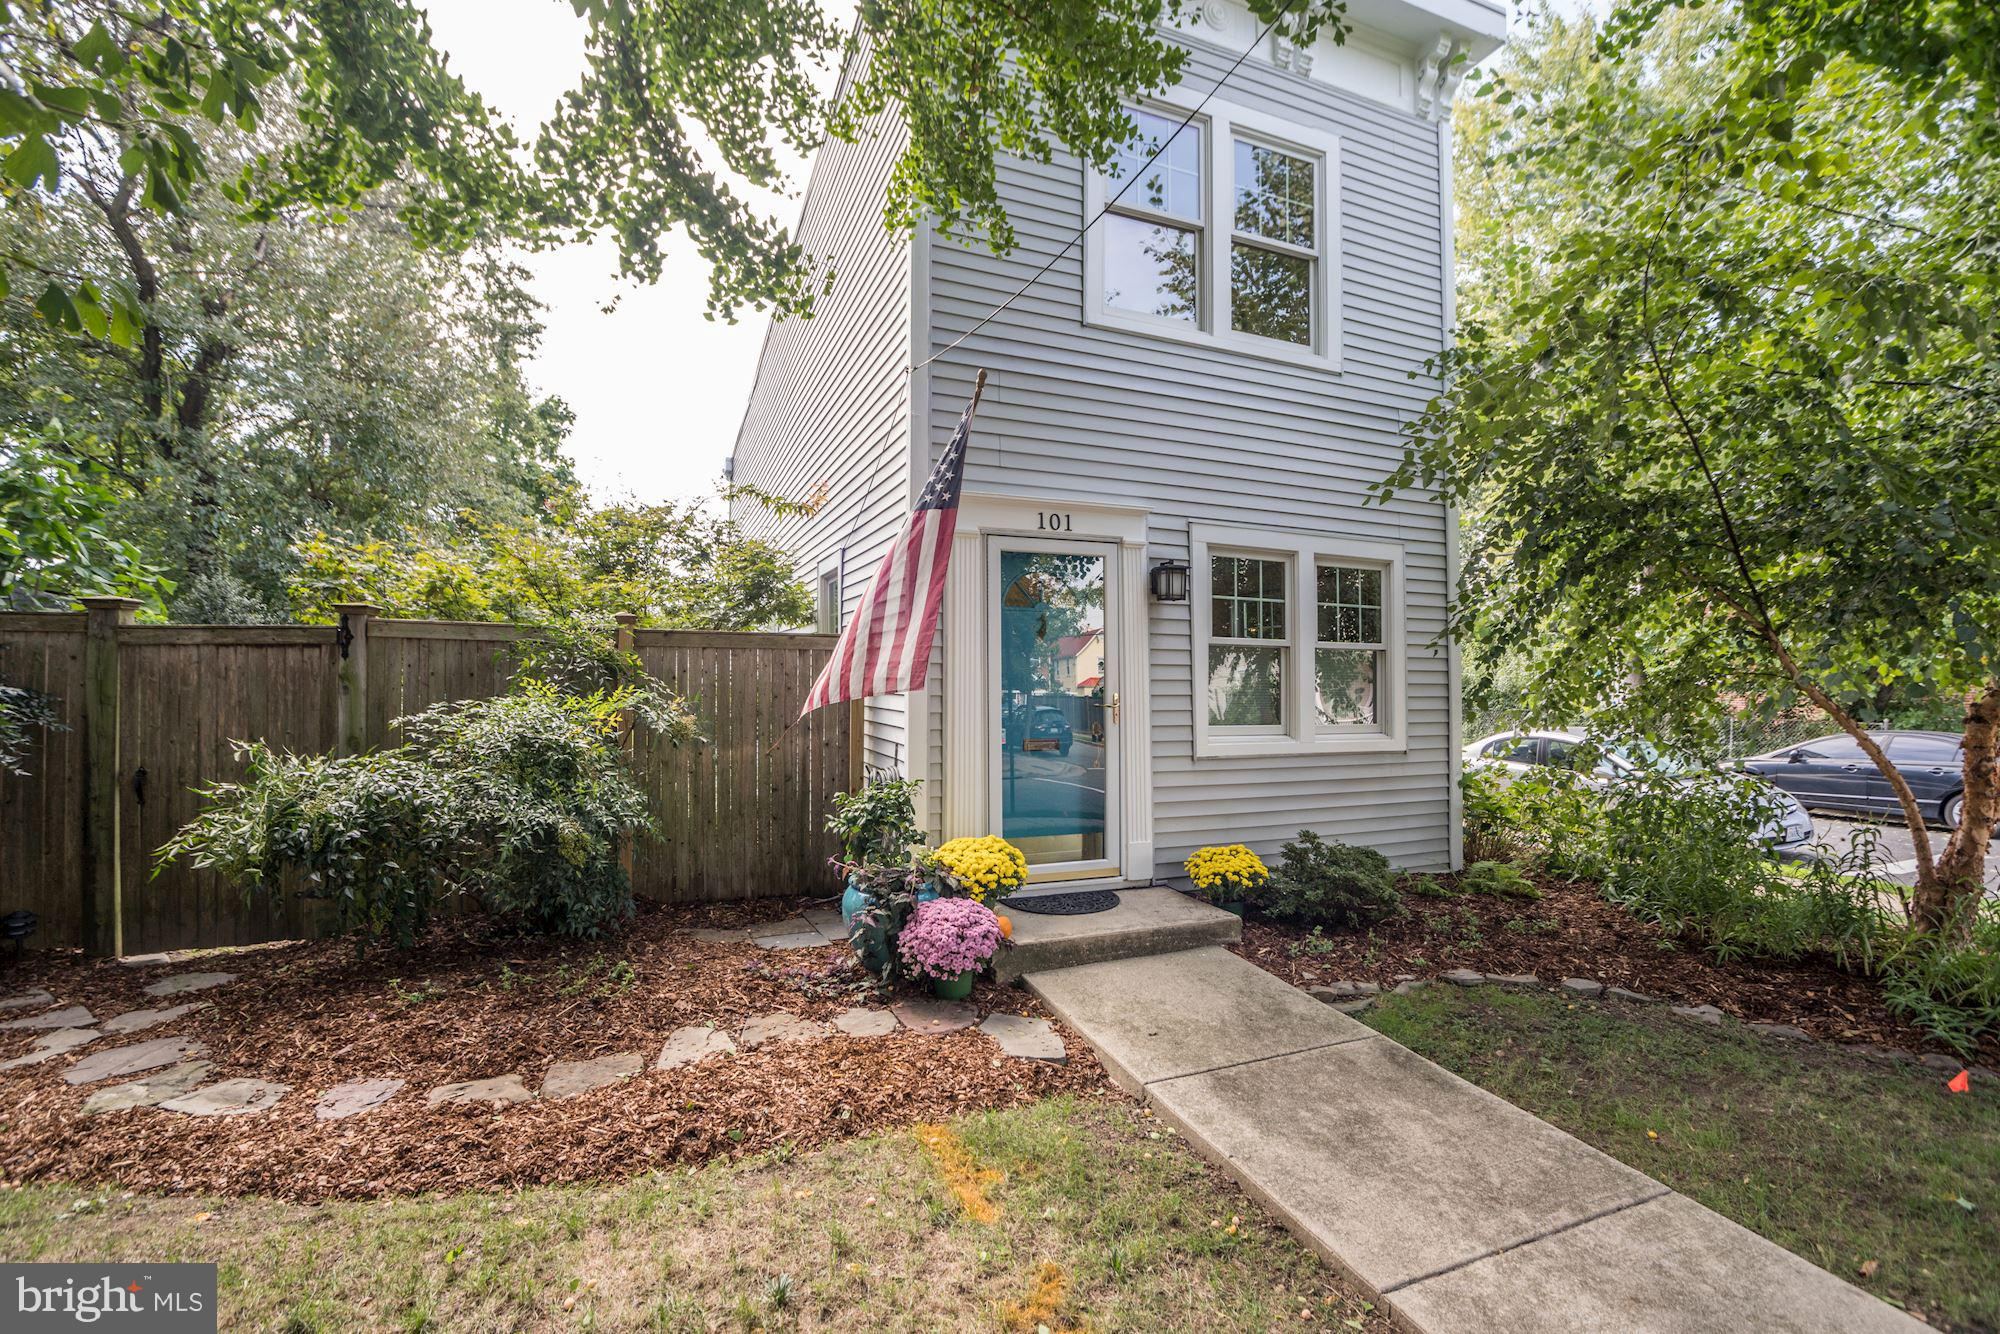 RARE in Del Ray! Italianate Rowhouse Built in 1895, Bright & Light, Detached SFH, Gorgeous Master w/vaulted ceiling & custom walk-in closet. Entertainment Kitchen,original pine floors & walls, fenced back- yard,prof. landscaped,off-street parking. Updates inc.new A/C, New Kitchen Appliances,Extensive Outdoor Low-Voltage Lighting System w/4 zone controllers.Just 1 blk from The Avenue.Open 10/14 1-4